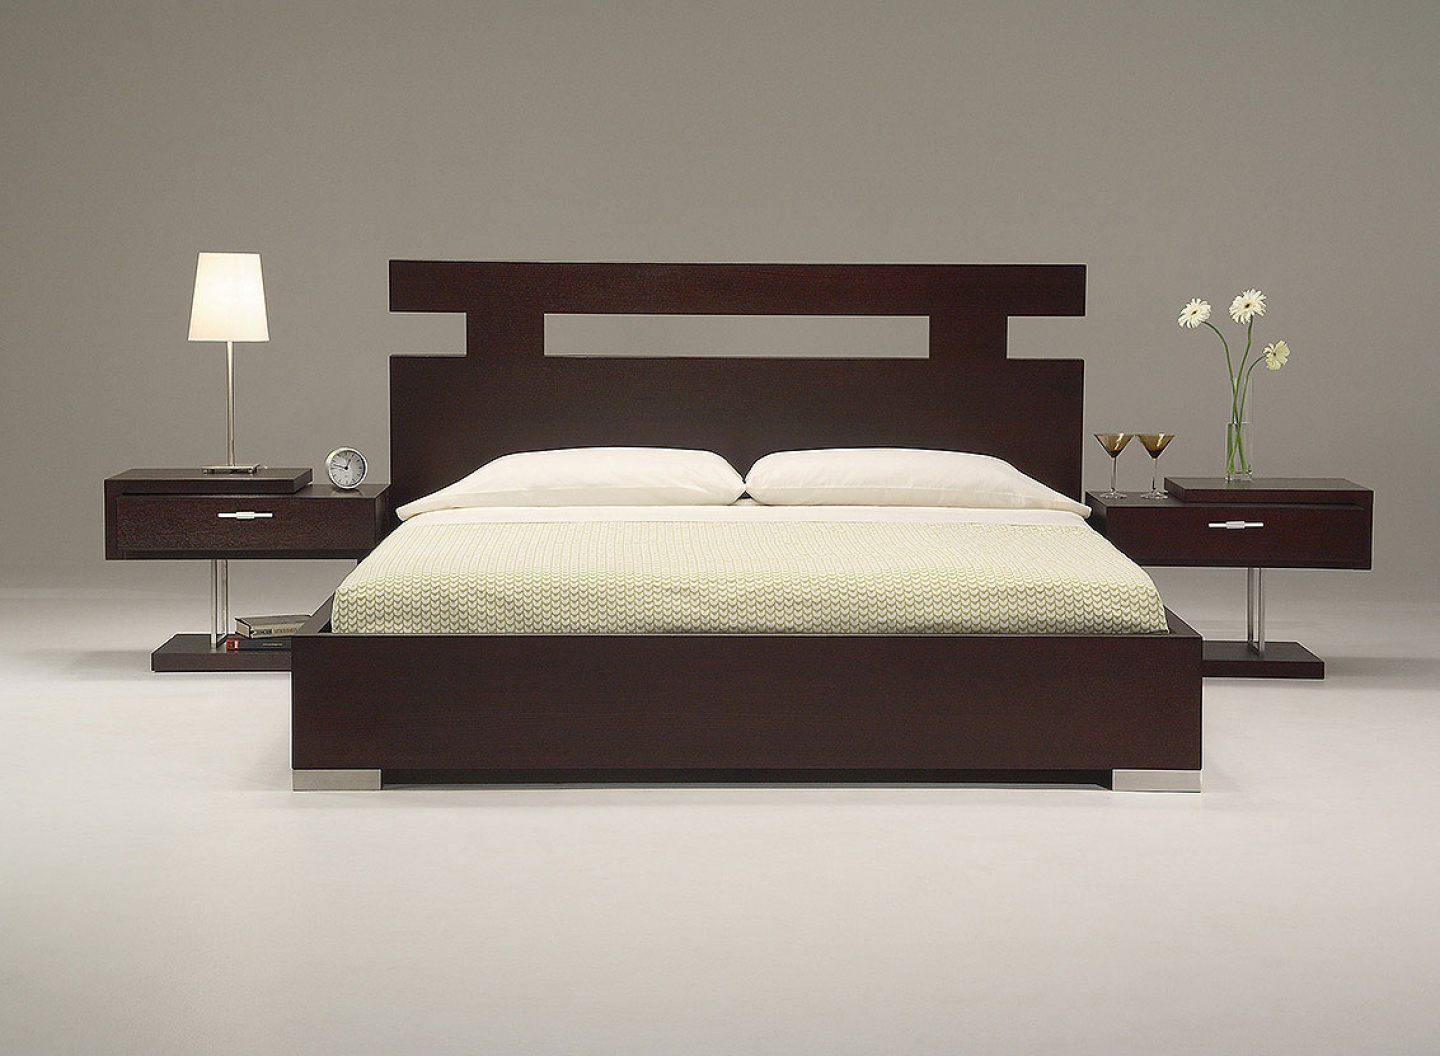 Awesome-bed-designs-LH3